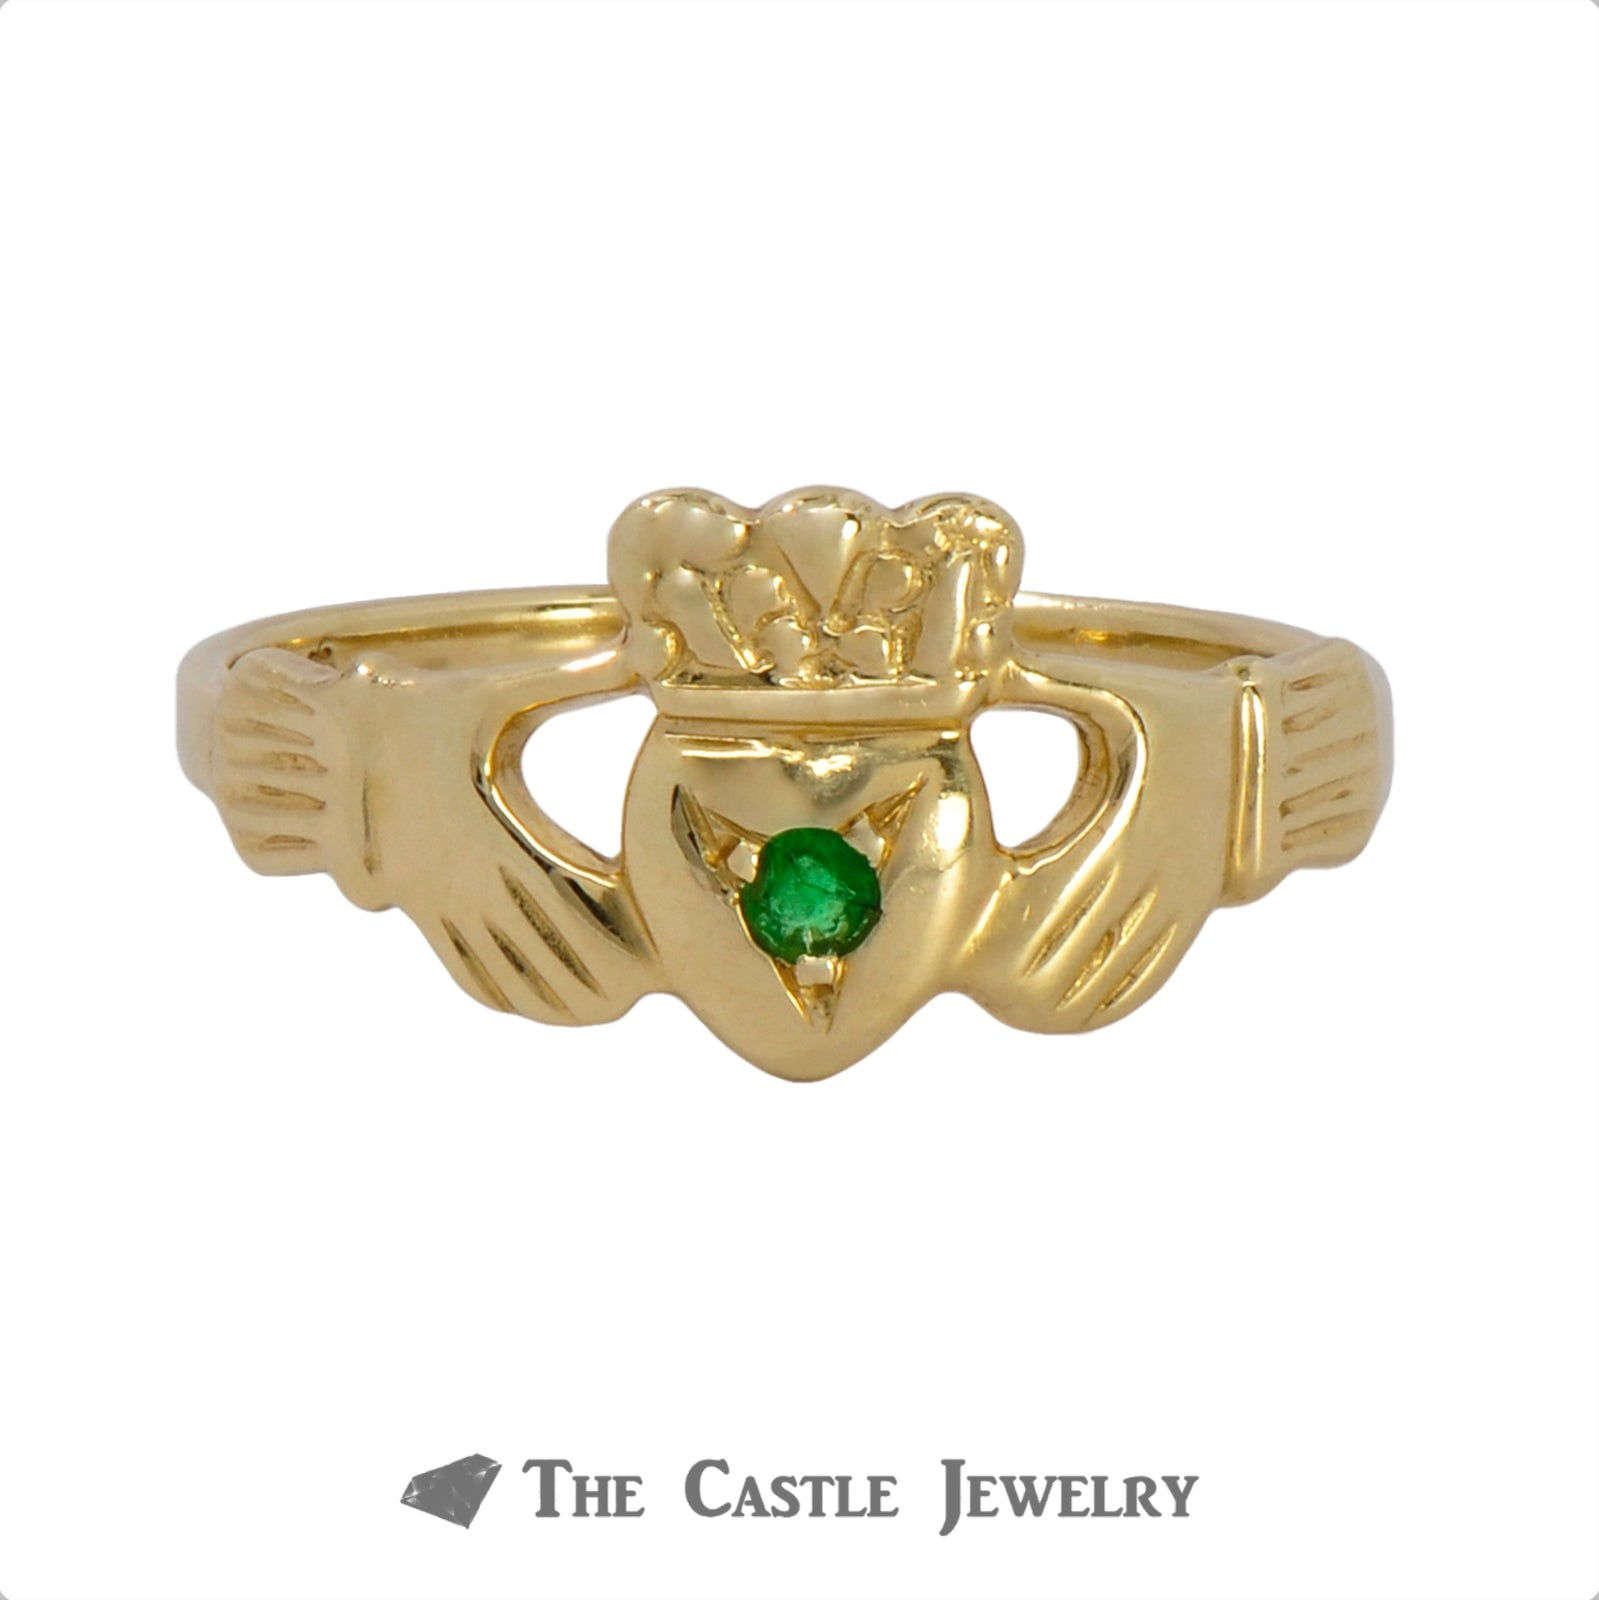 Claddagh Ring with Round Emerald Center Crafted in 14k Yellow Gold